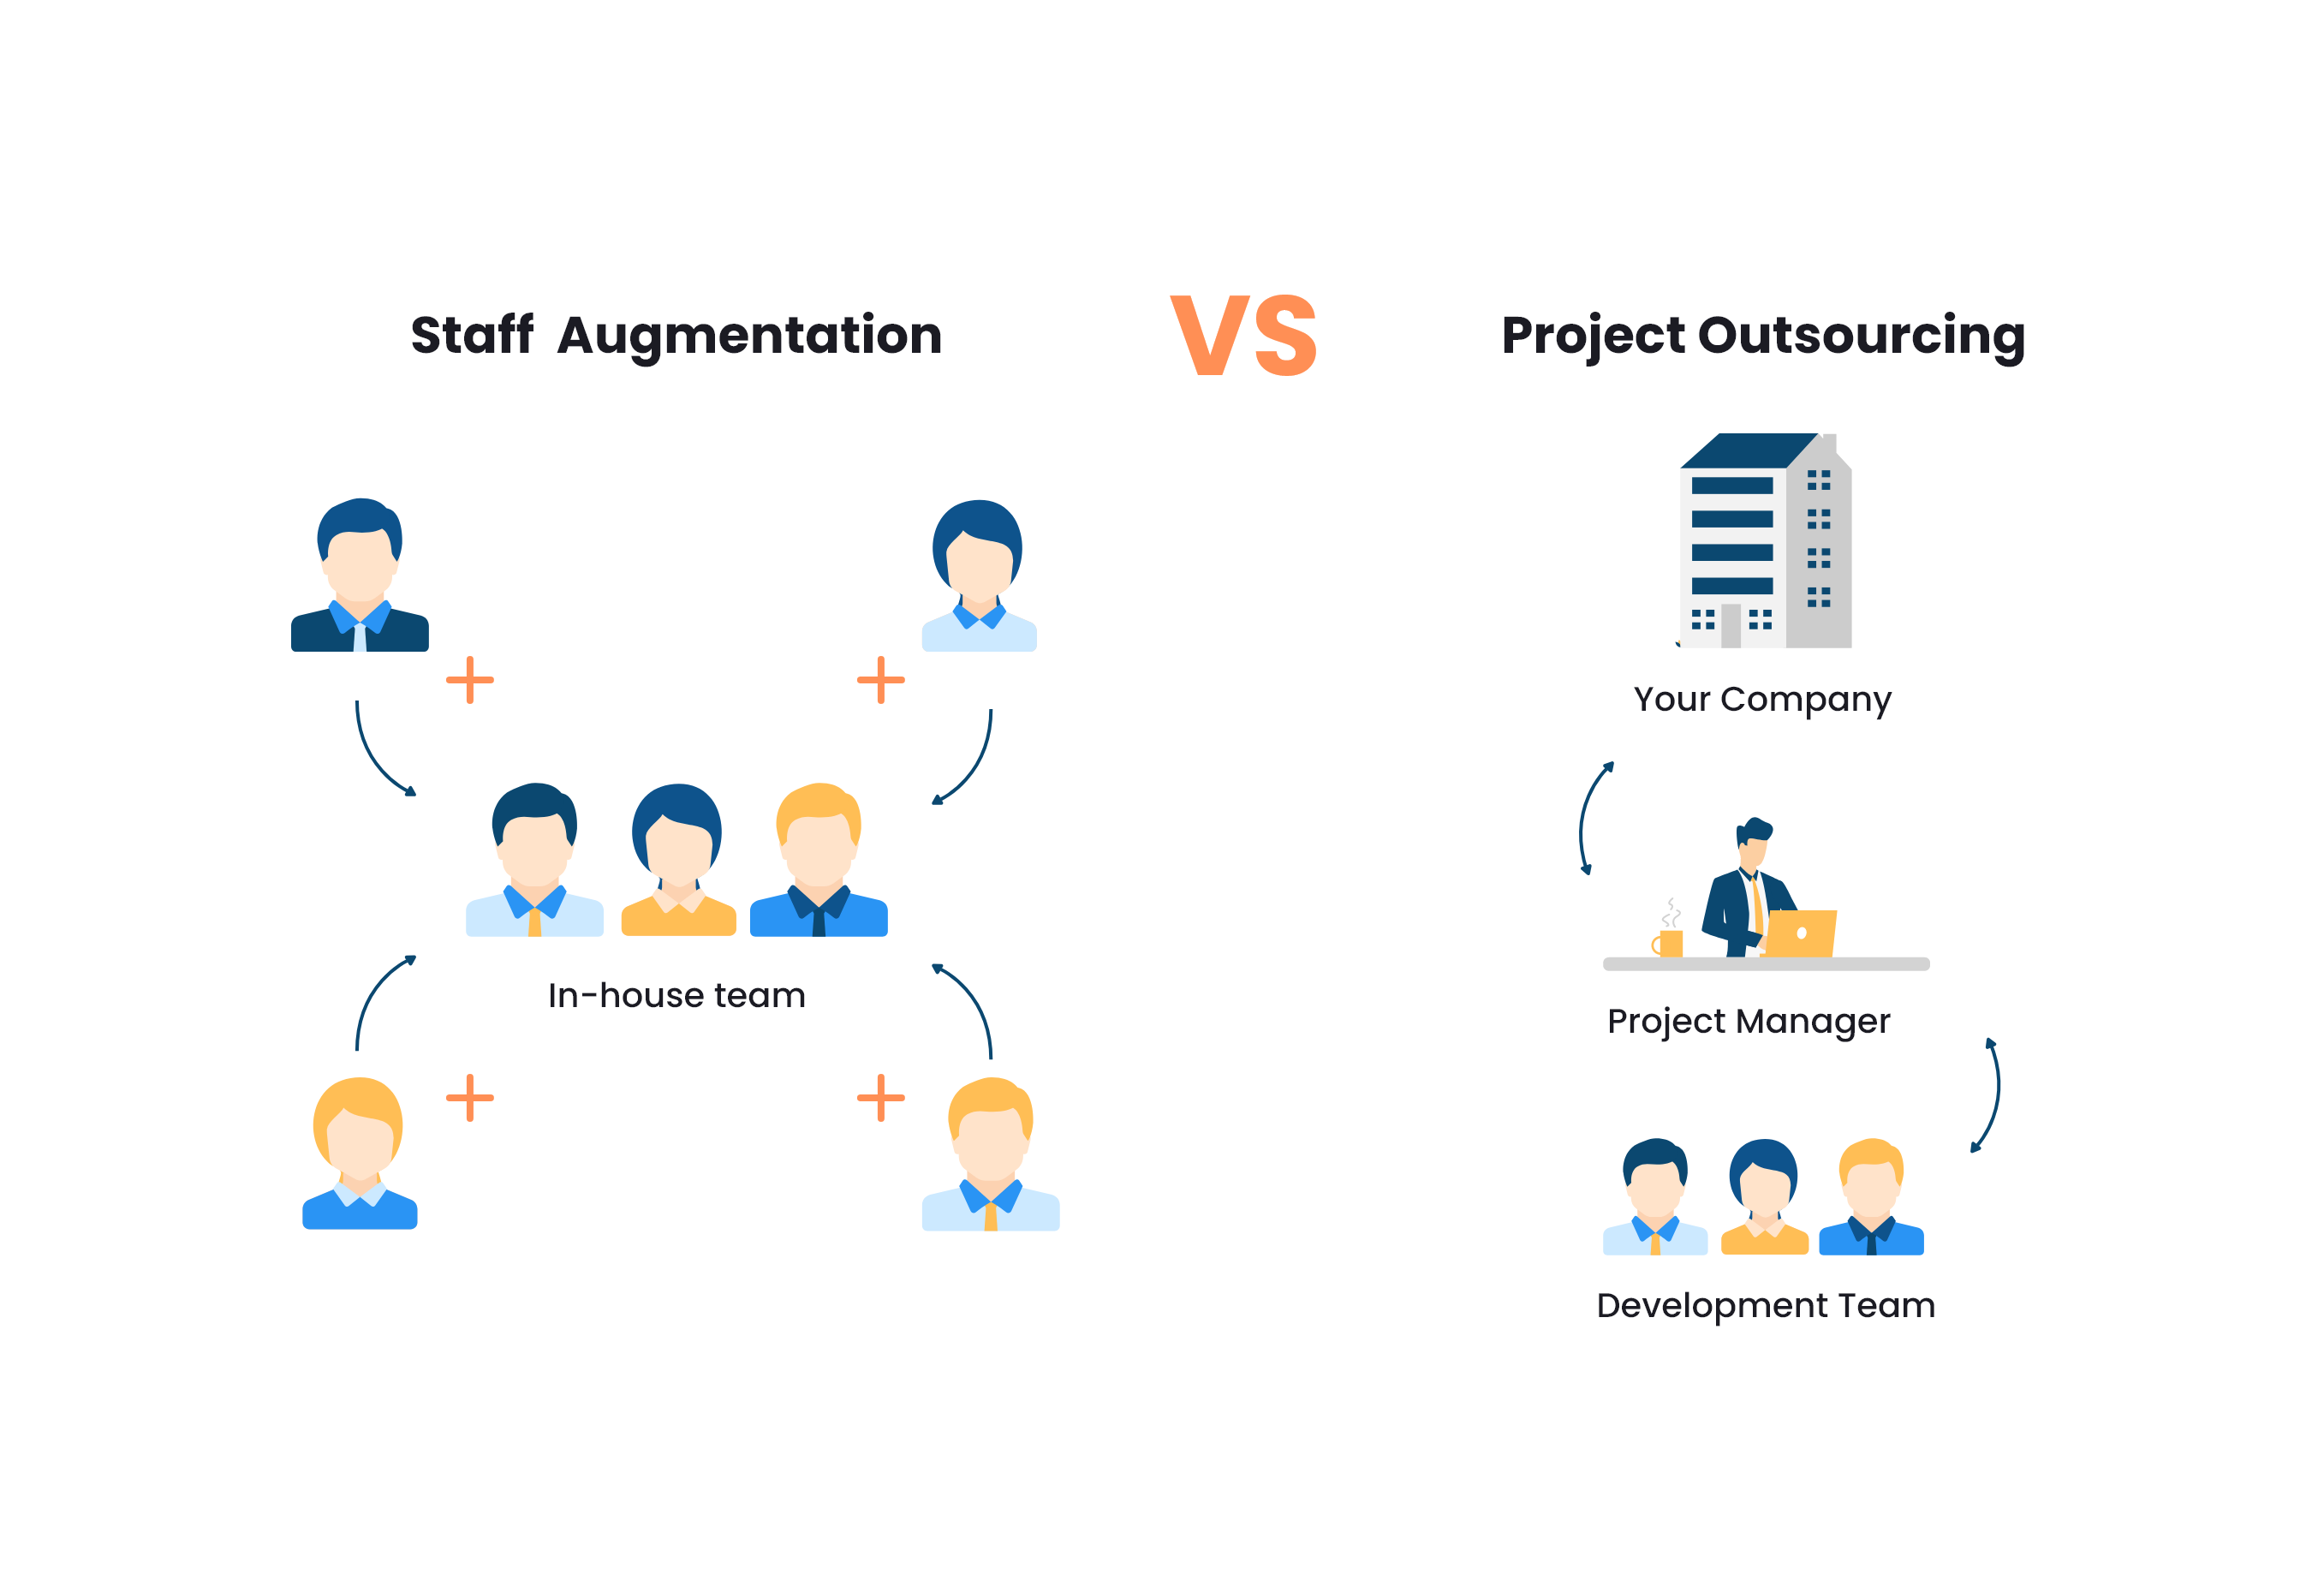 Staff Augmentation vs Project Outsourcing